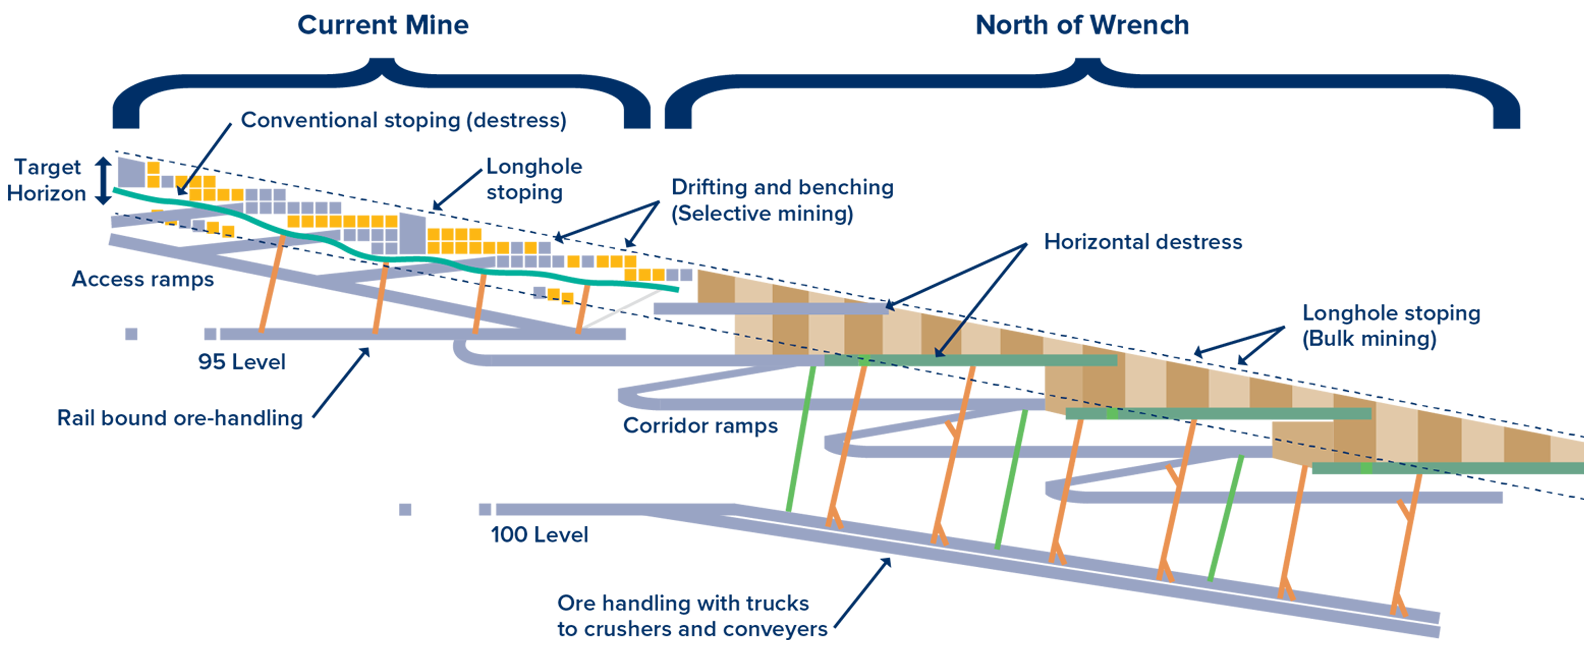 Illustration of mining methods at the Current Mine and North of Wrench [photo]